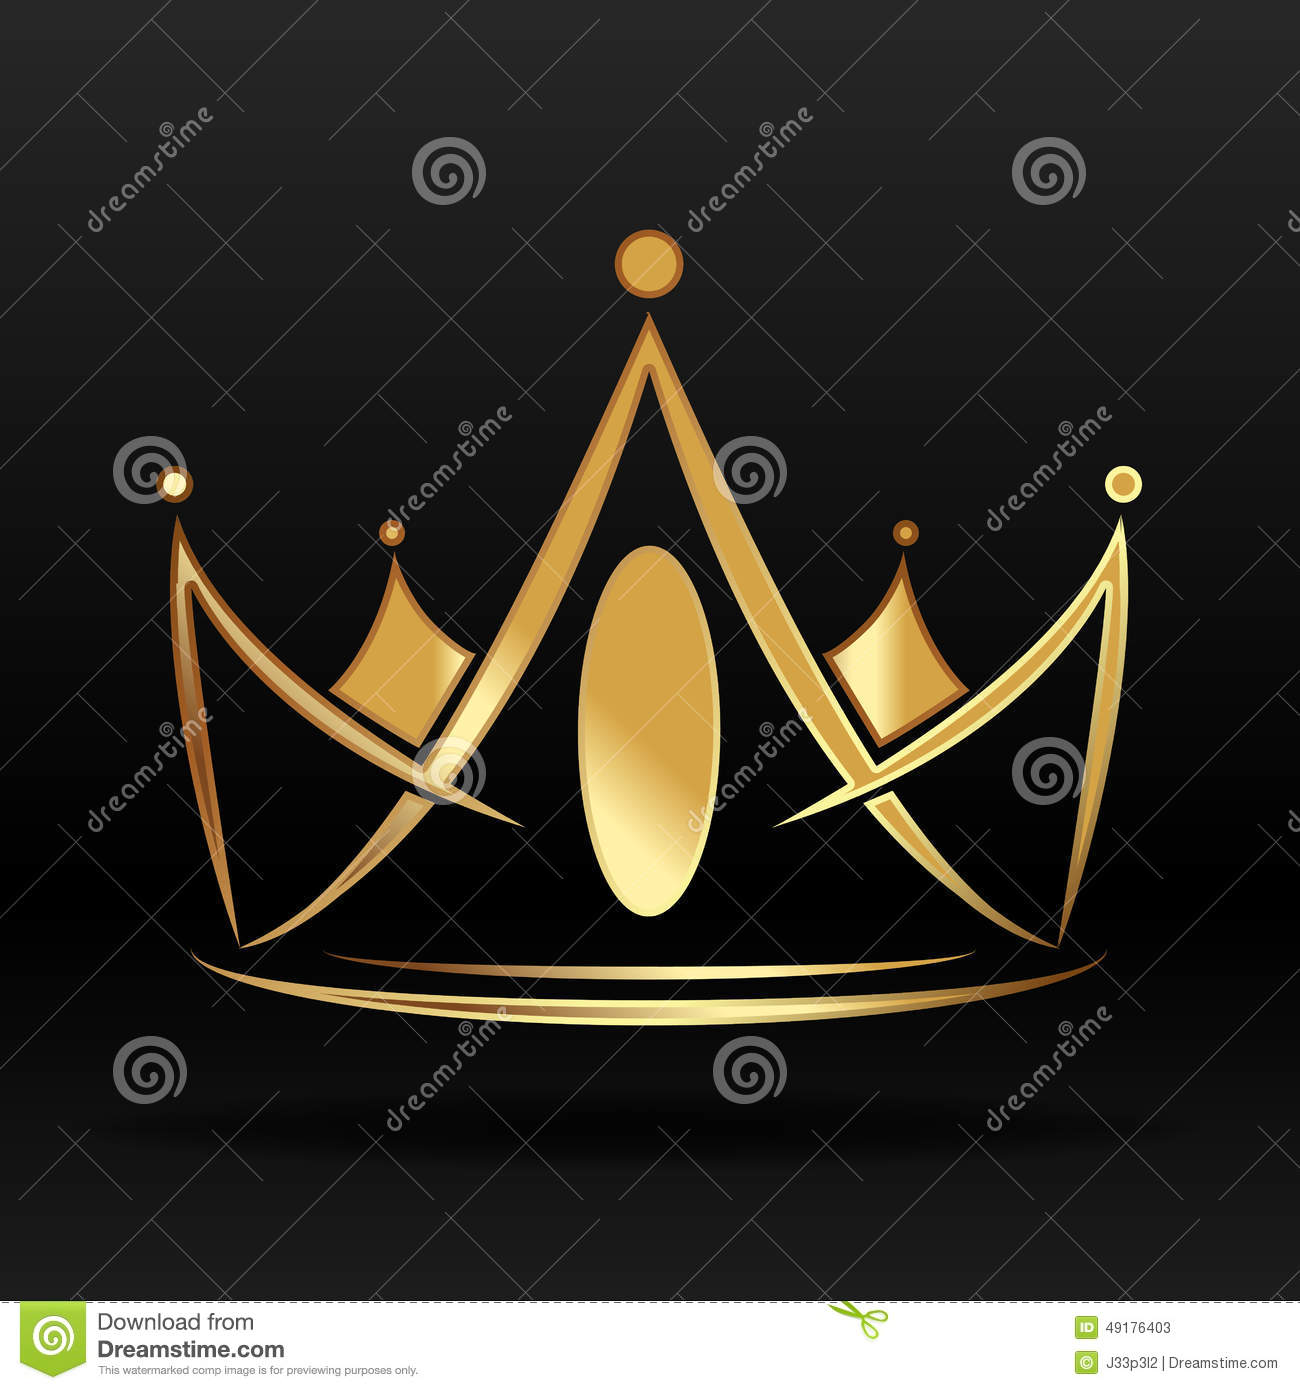 E House Plans Golden Crown For Logo And Design Stock Vector Image